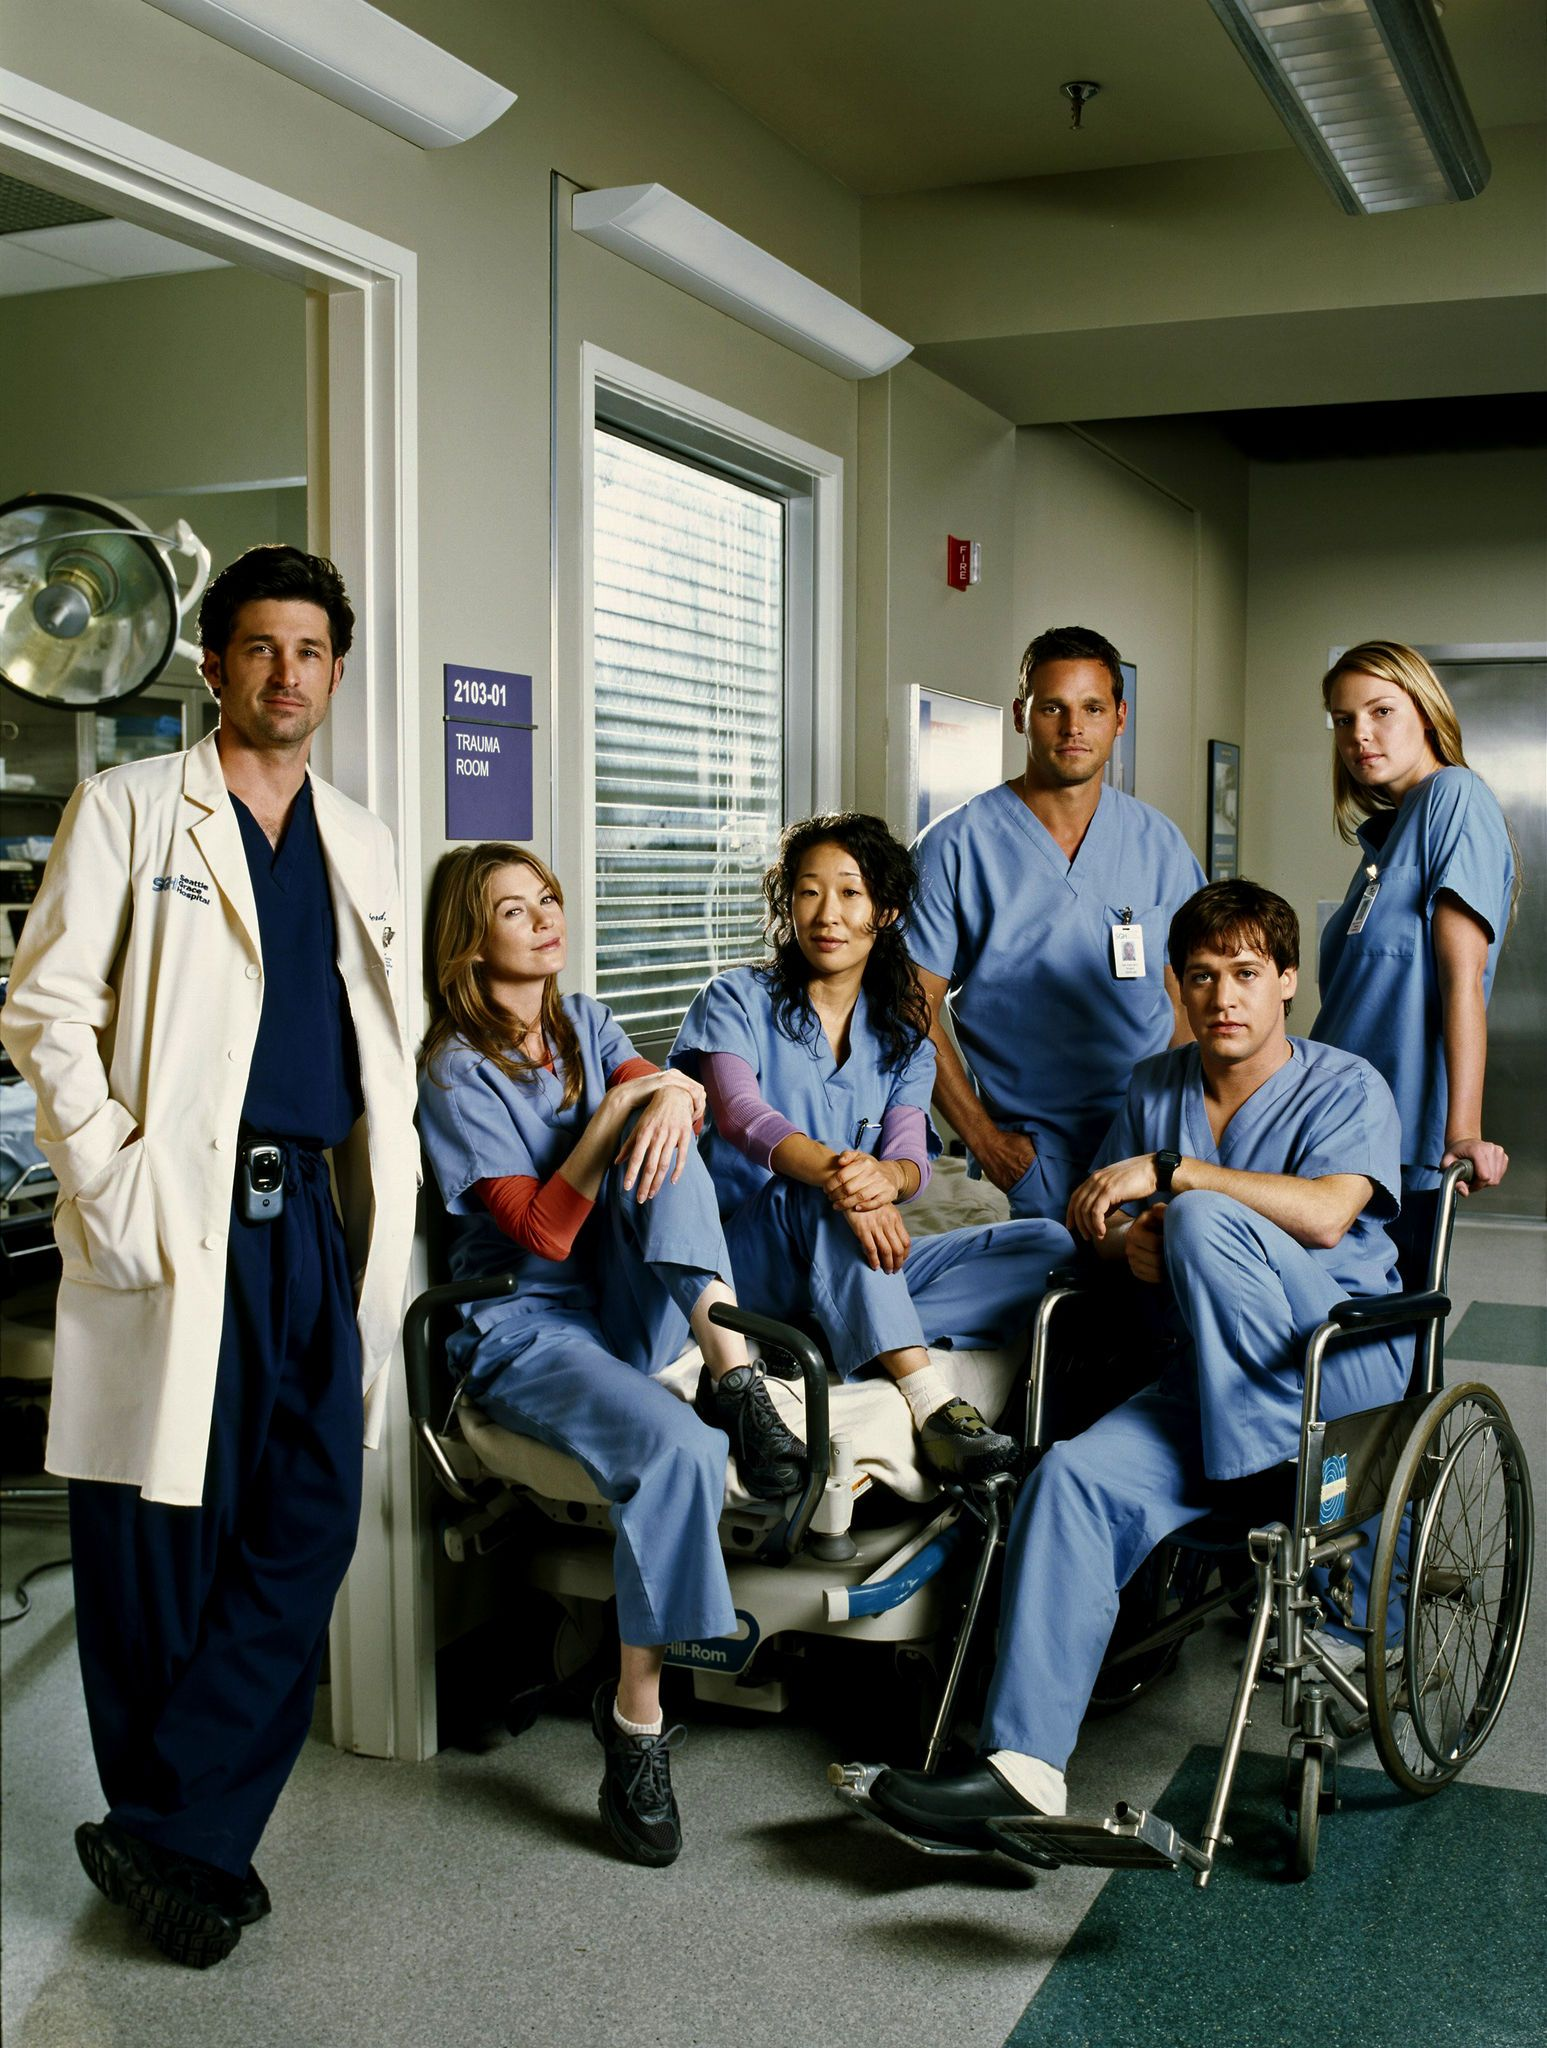 Greys Anatomy Season 1 Promo Greys Anatomy Greys Anatomy